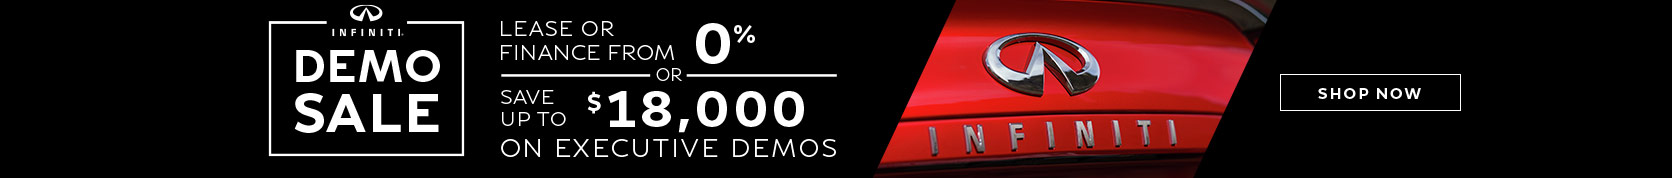 INFINITI Demo Sale incentive